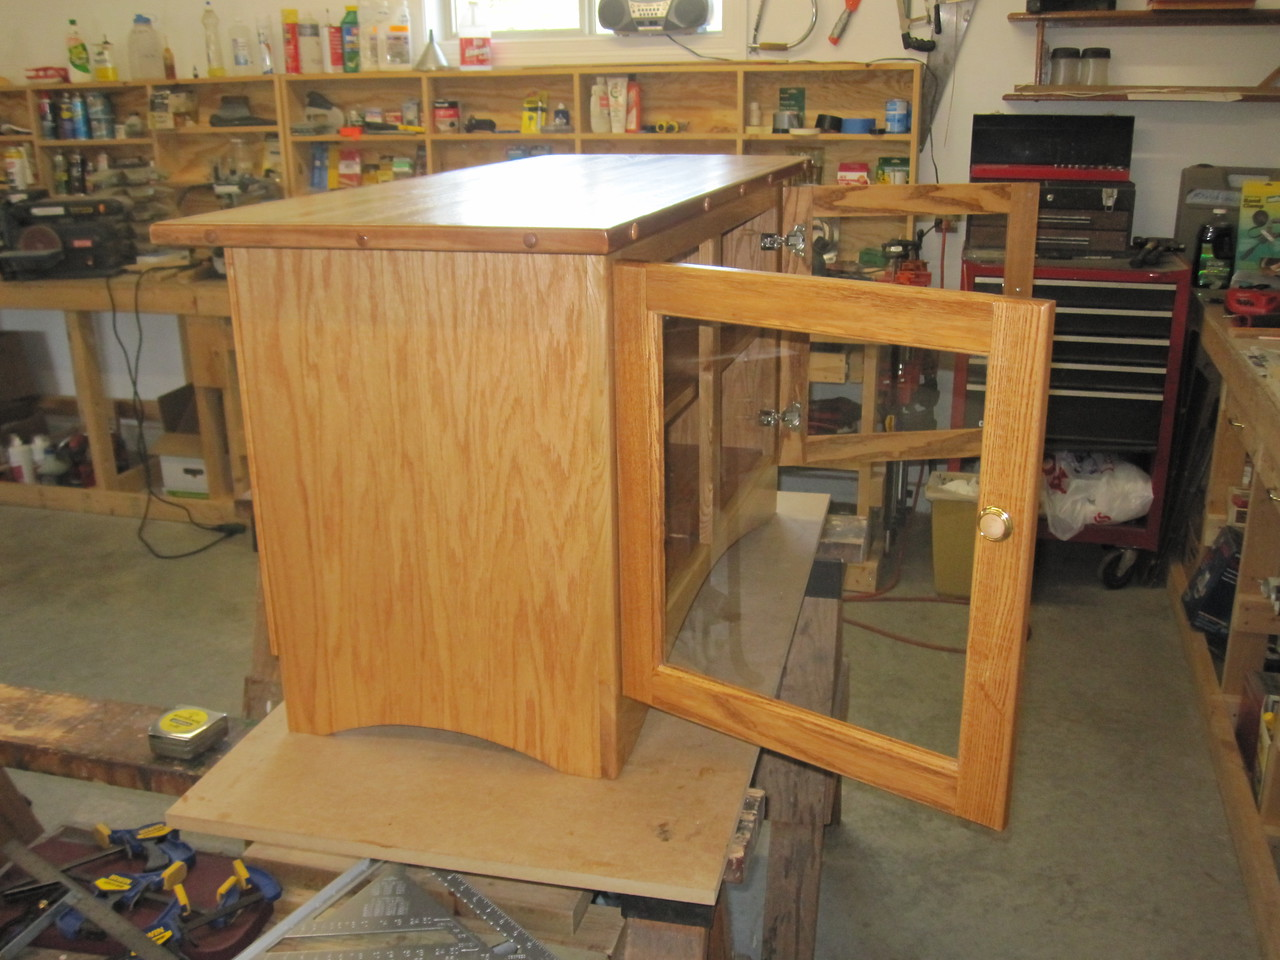 LEARNED A LOT BUILDING THIS CABINET WITH PANEL-TYPE DOORS & EURO HINGES  FEBRUARY 2012